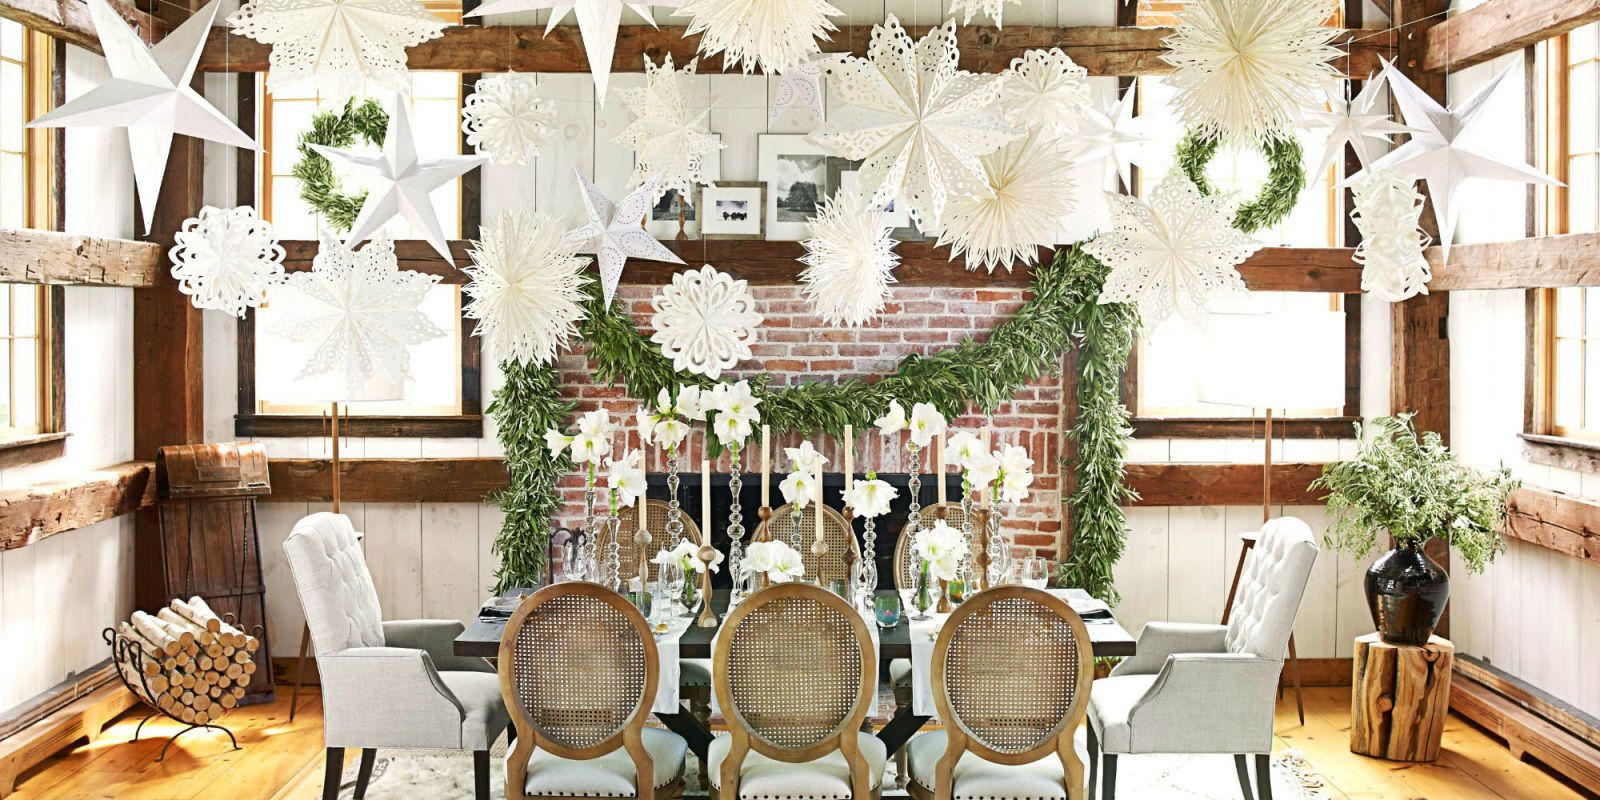 Home decorations images.